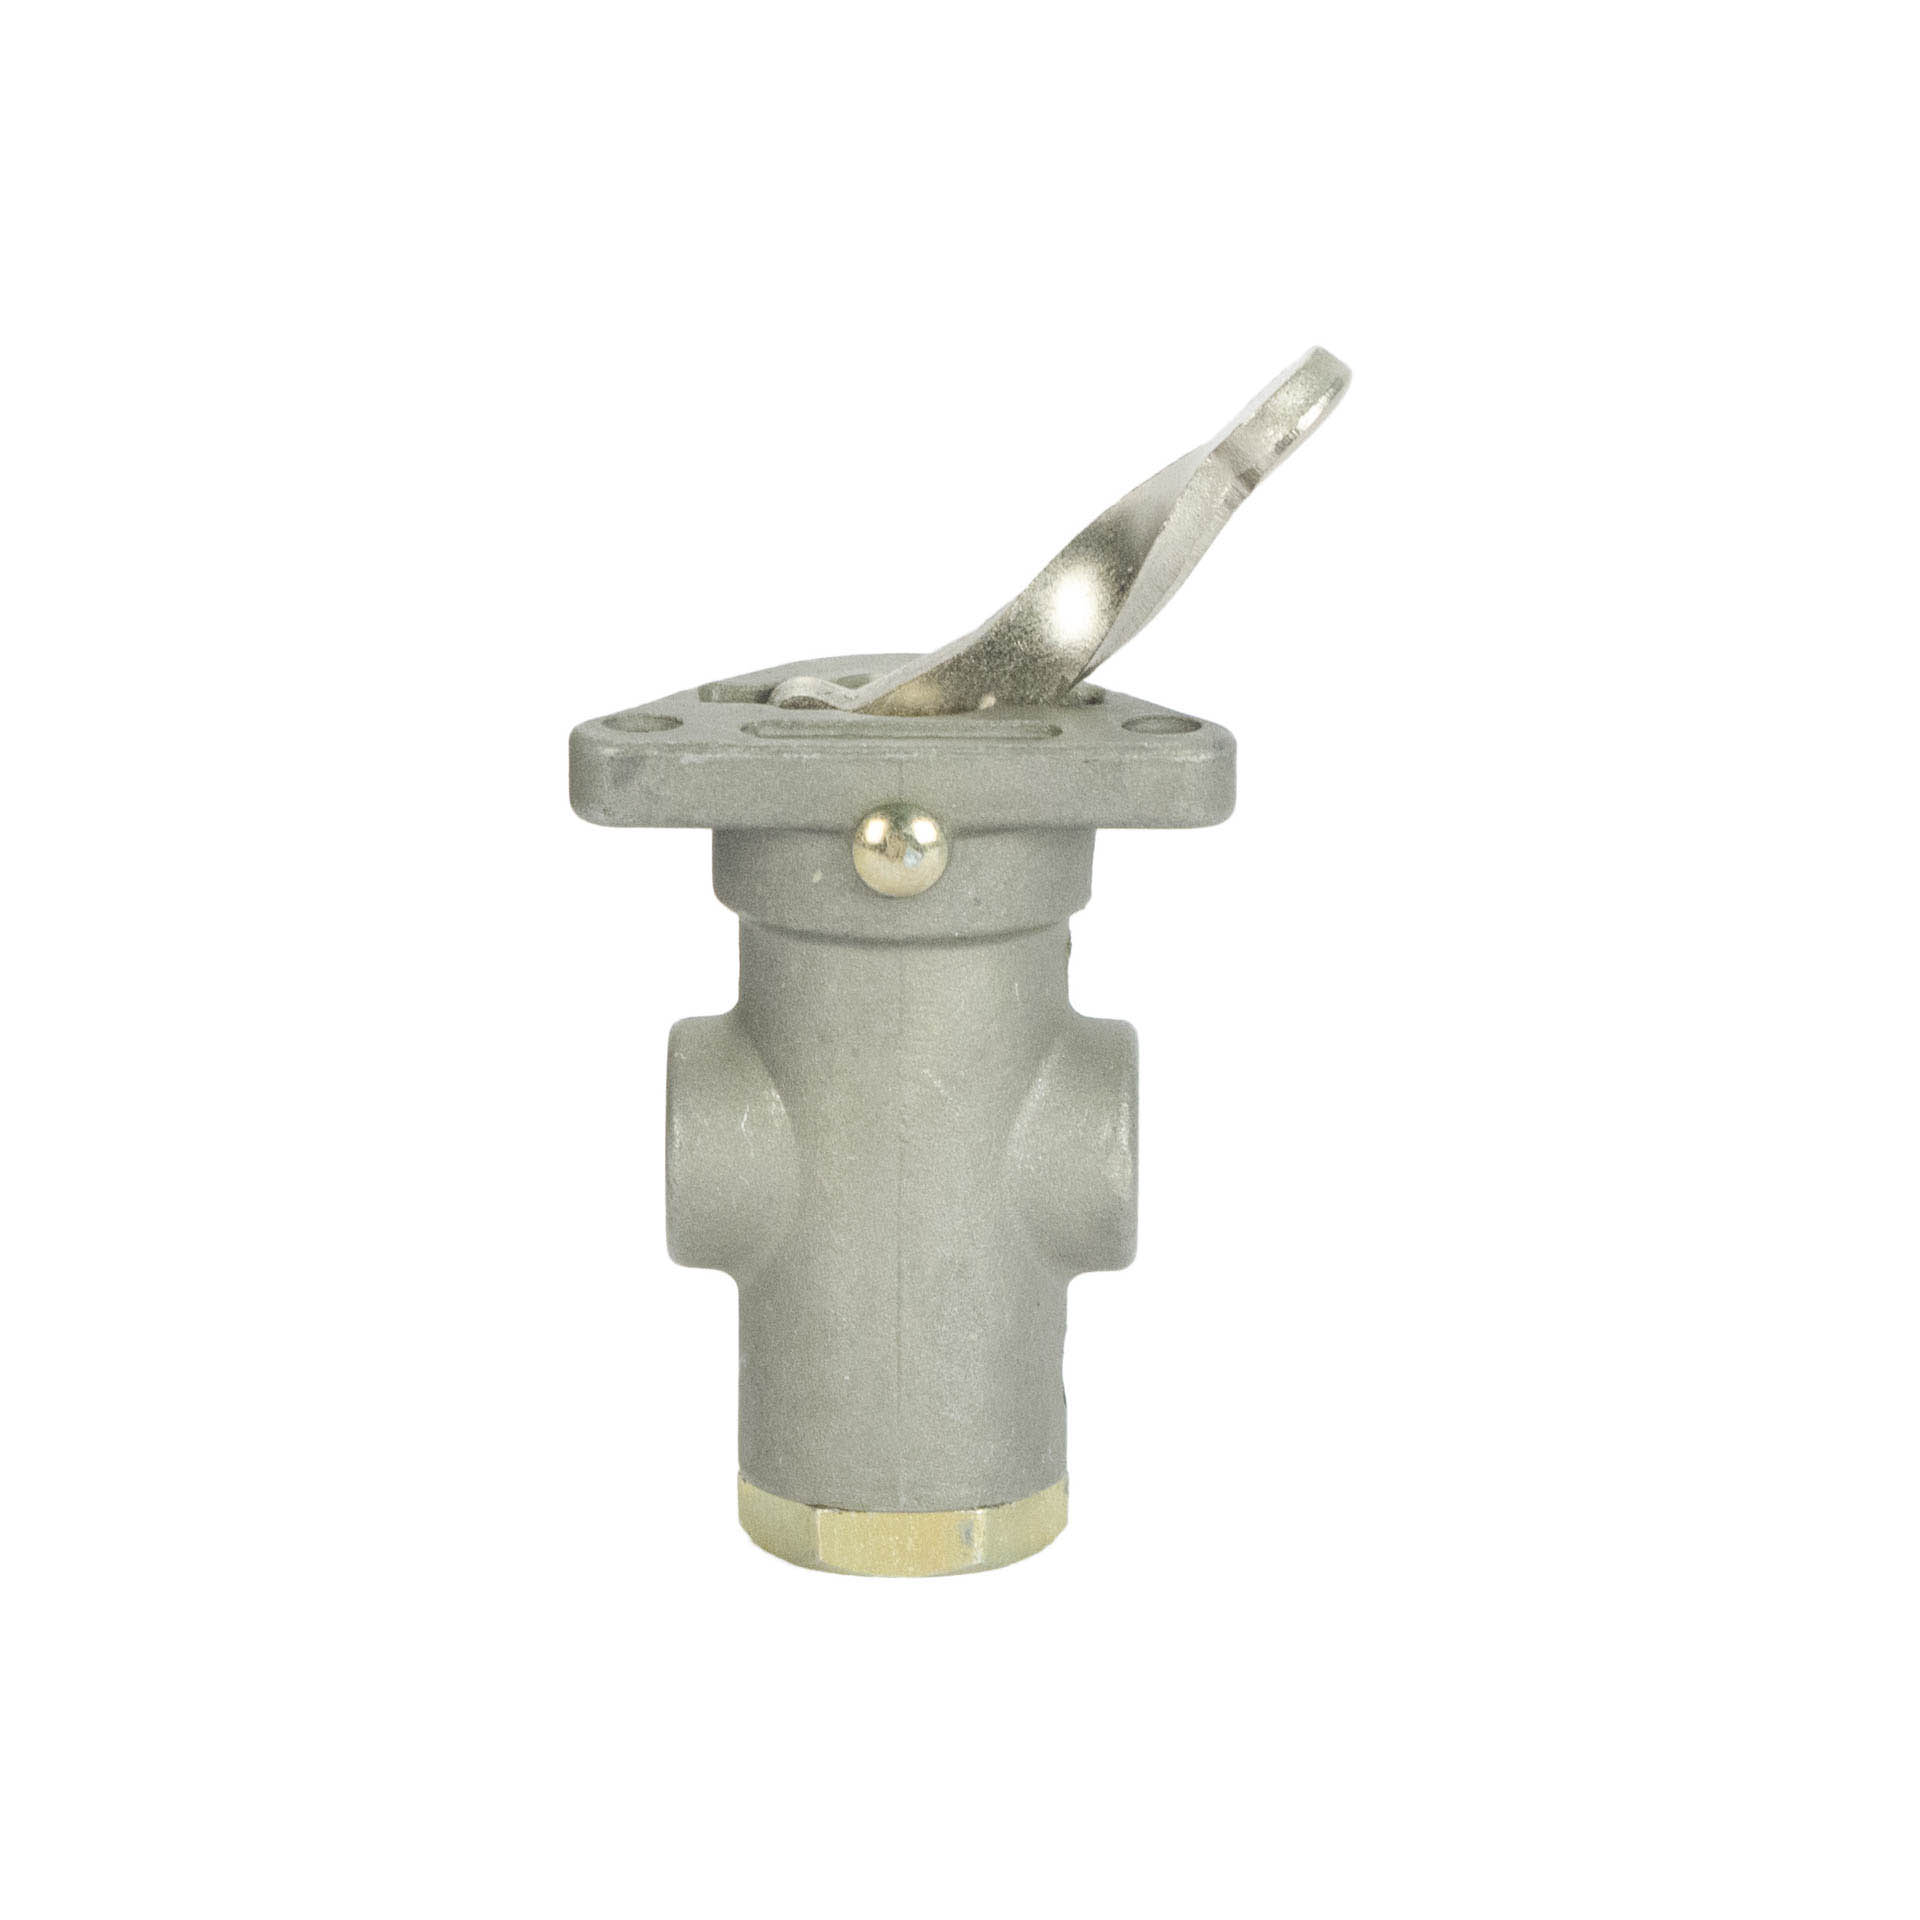 buy air toggle switch mjtv4 online at access truck parts toggle switch